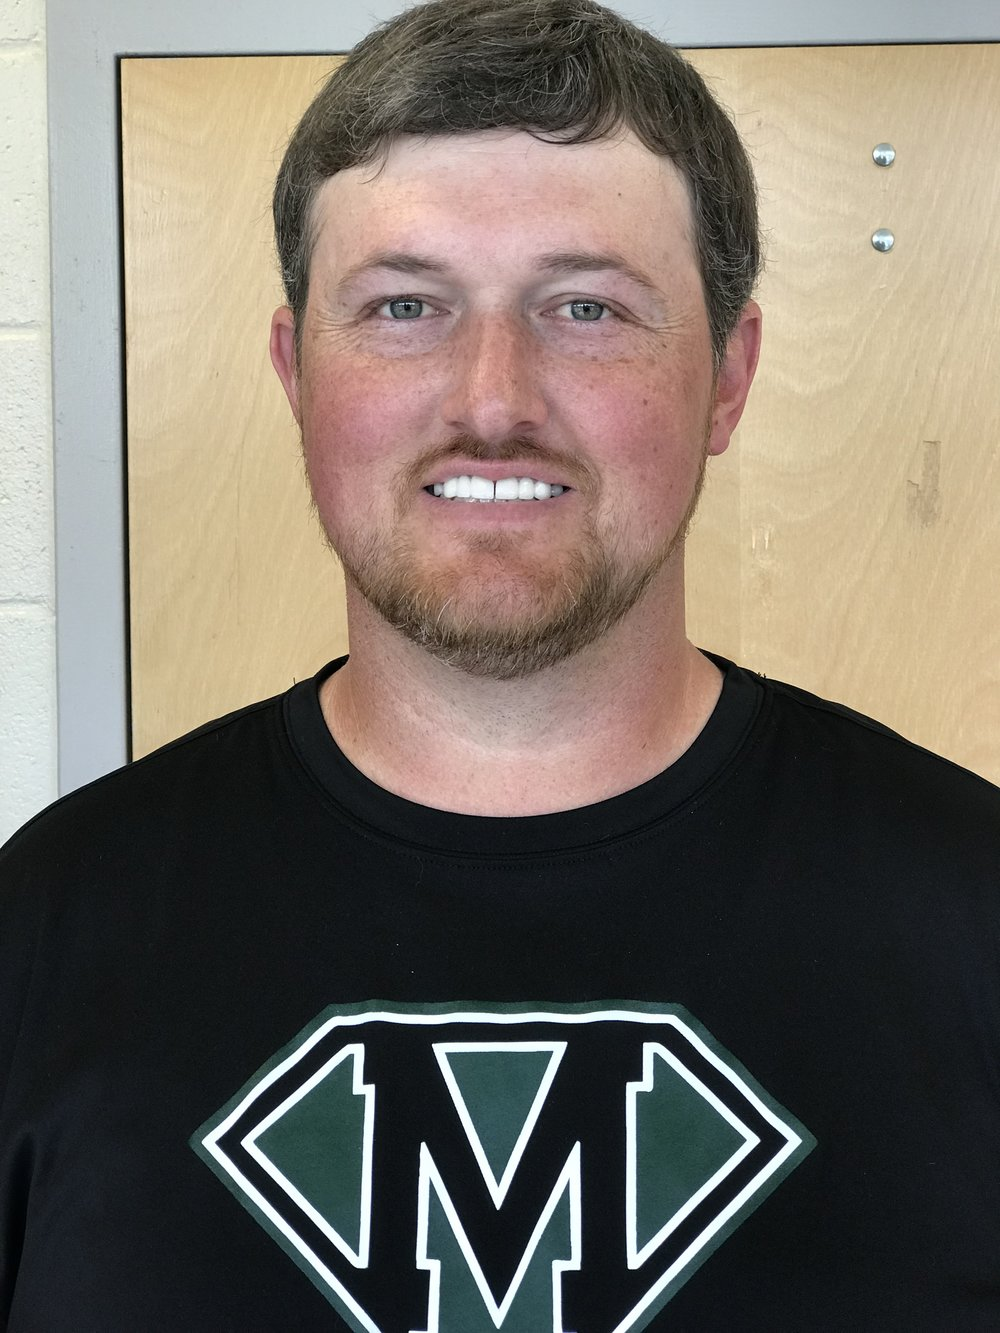 Phillip NasworthyDefensive Line - Coach Nasworthy enters his 1st season with the Mustangs football team and his 4th season coaching overall. Coach Nasworthy teaches in the Special Education department at KMHS. Prior to coming to the Mountain, Coach Nasworthy spent 1 year at Oak Mountain Academy were he was Head Coach of their Baseball program and a basketball assistant coach. Coach Nasworthy also spent one year with Bartow County Schools where he was pitching coach for Woodland High School baseball. Coach Nasworthy is currently coaching with baseball Mustangs. Coach Nasworthy is a graduate of Model High School where he played football, basketball, and baseball. He then went on to Shorter University where he played baseball. He earned his B.S. in Education from the University of West Georgia.